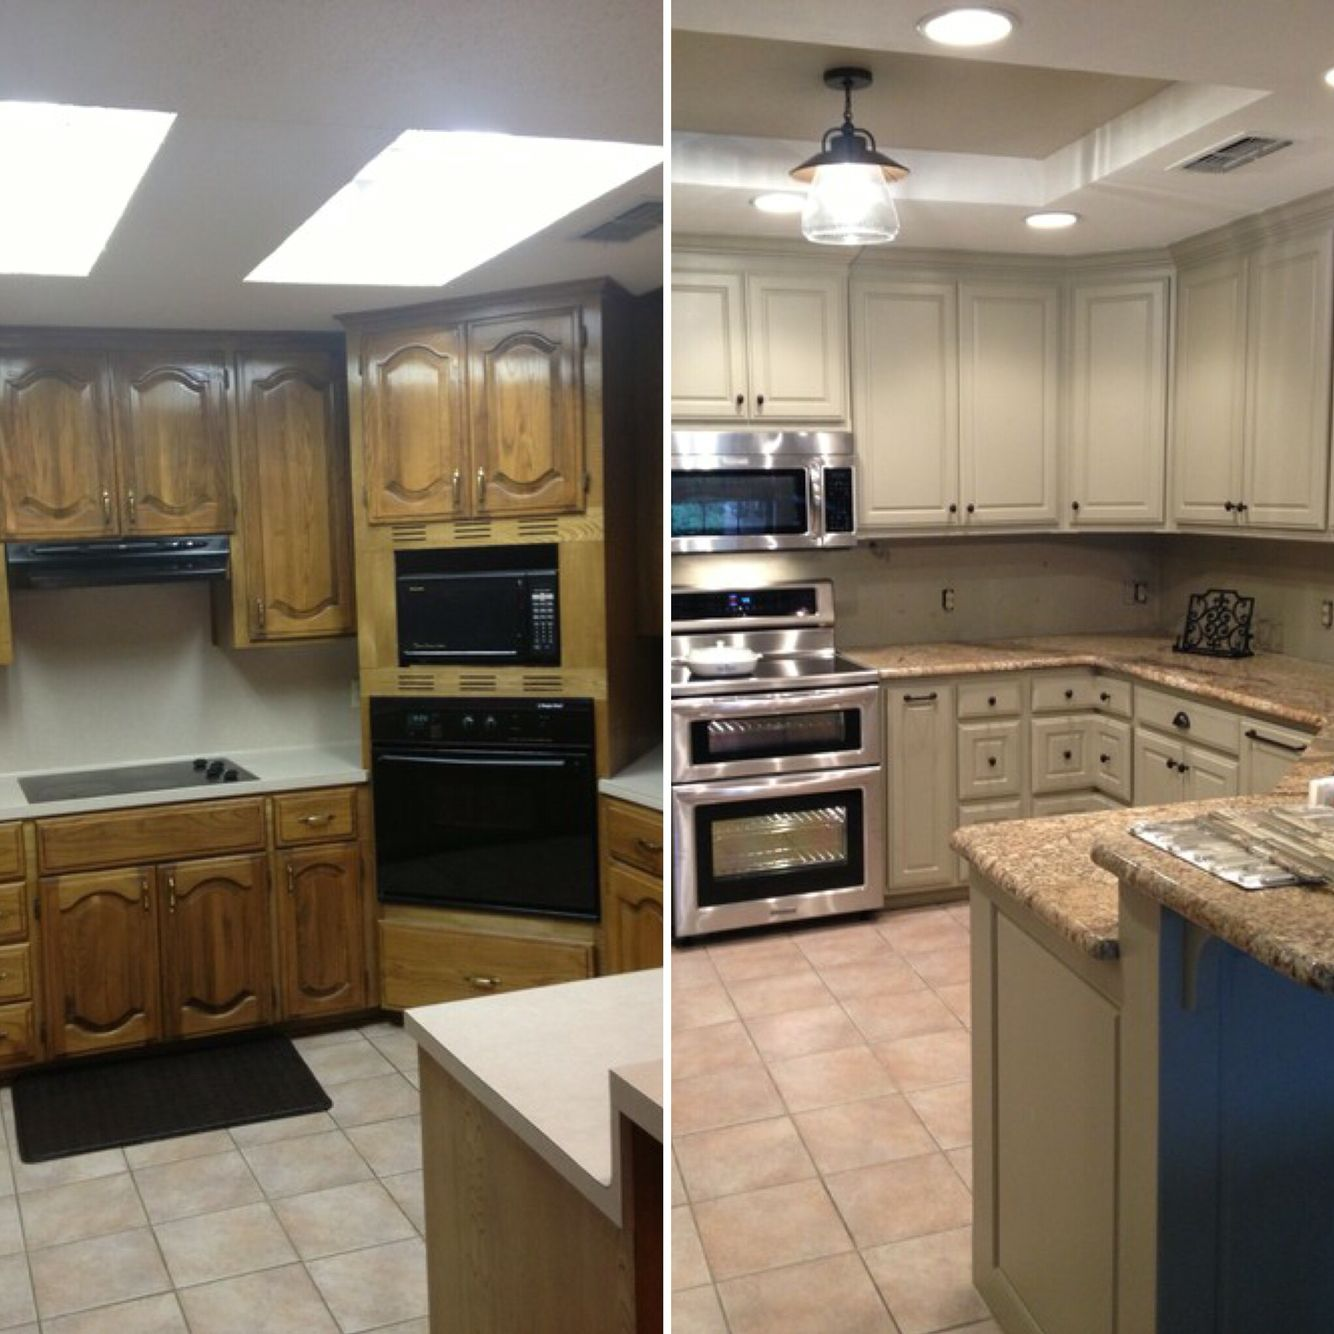 Before and after for updating drop ceiling kitchen Kitchen lighting design help